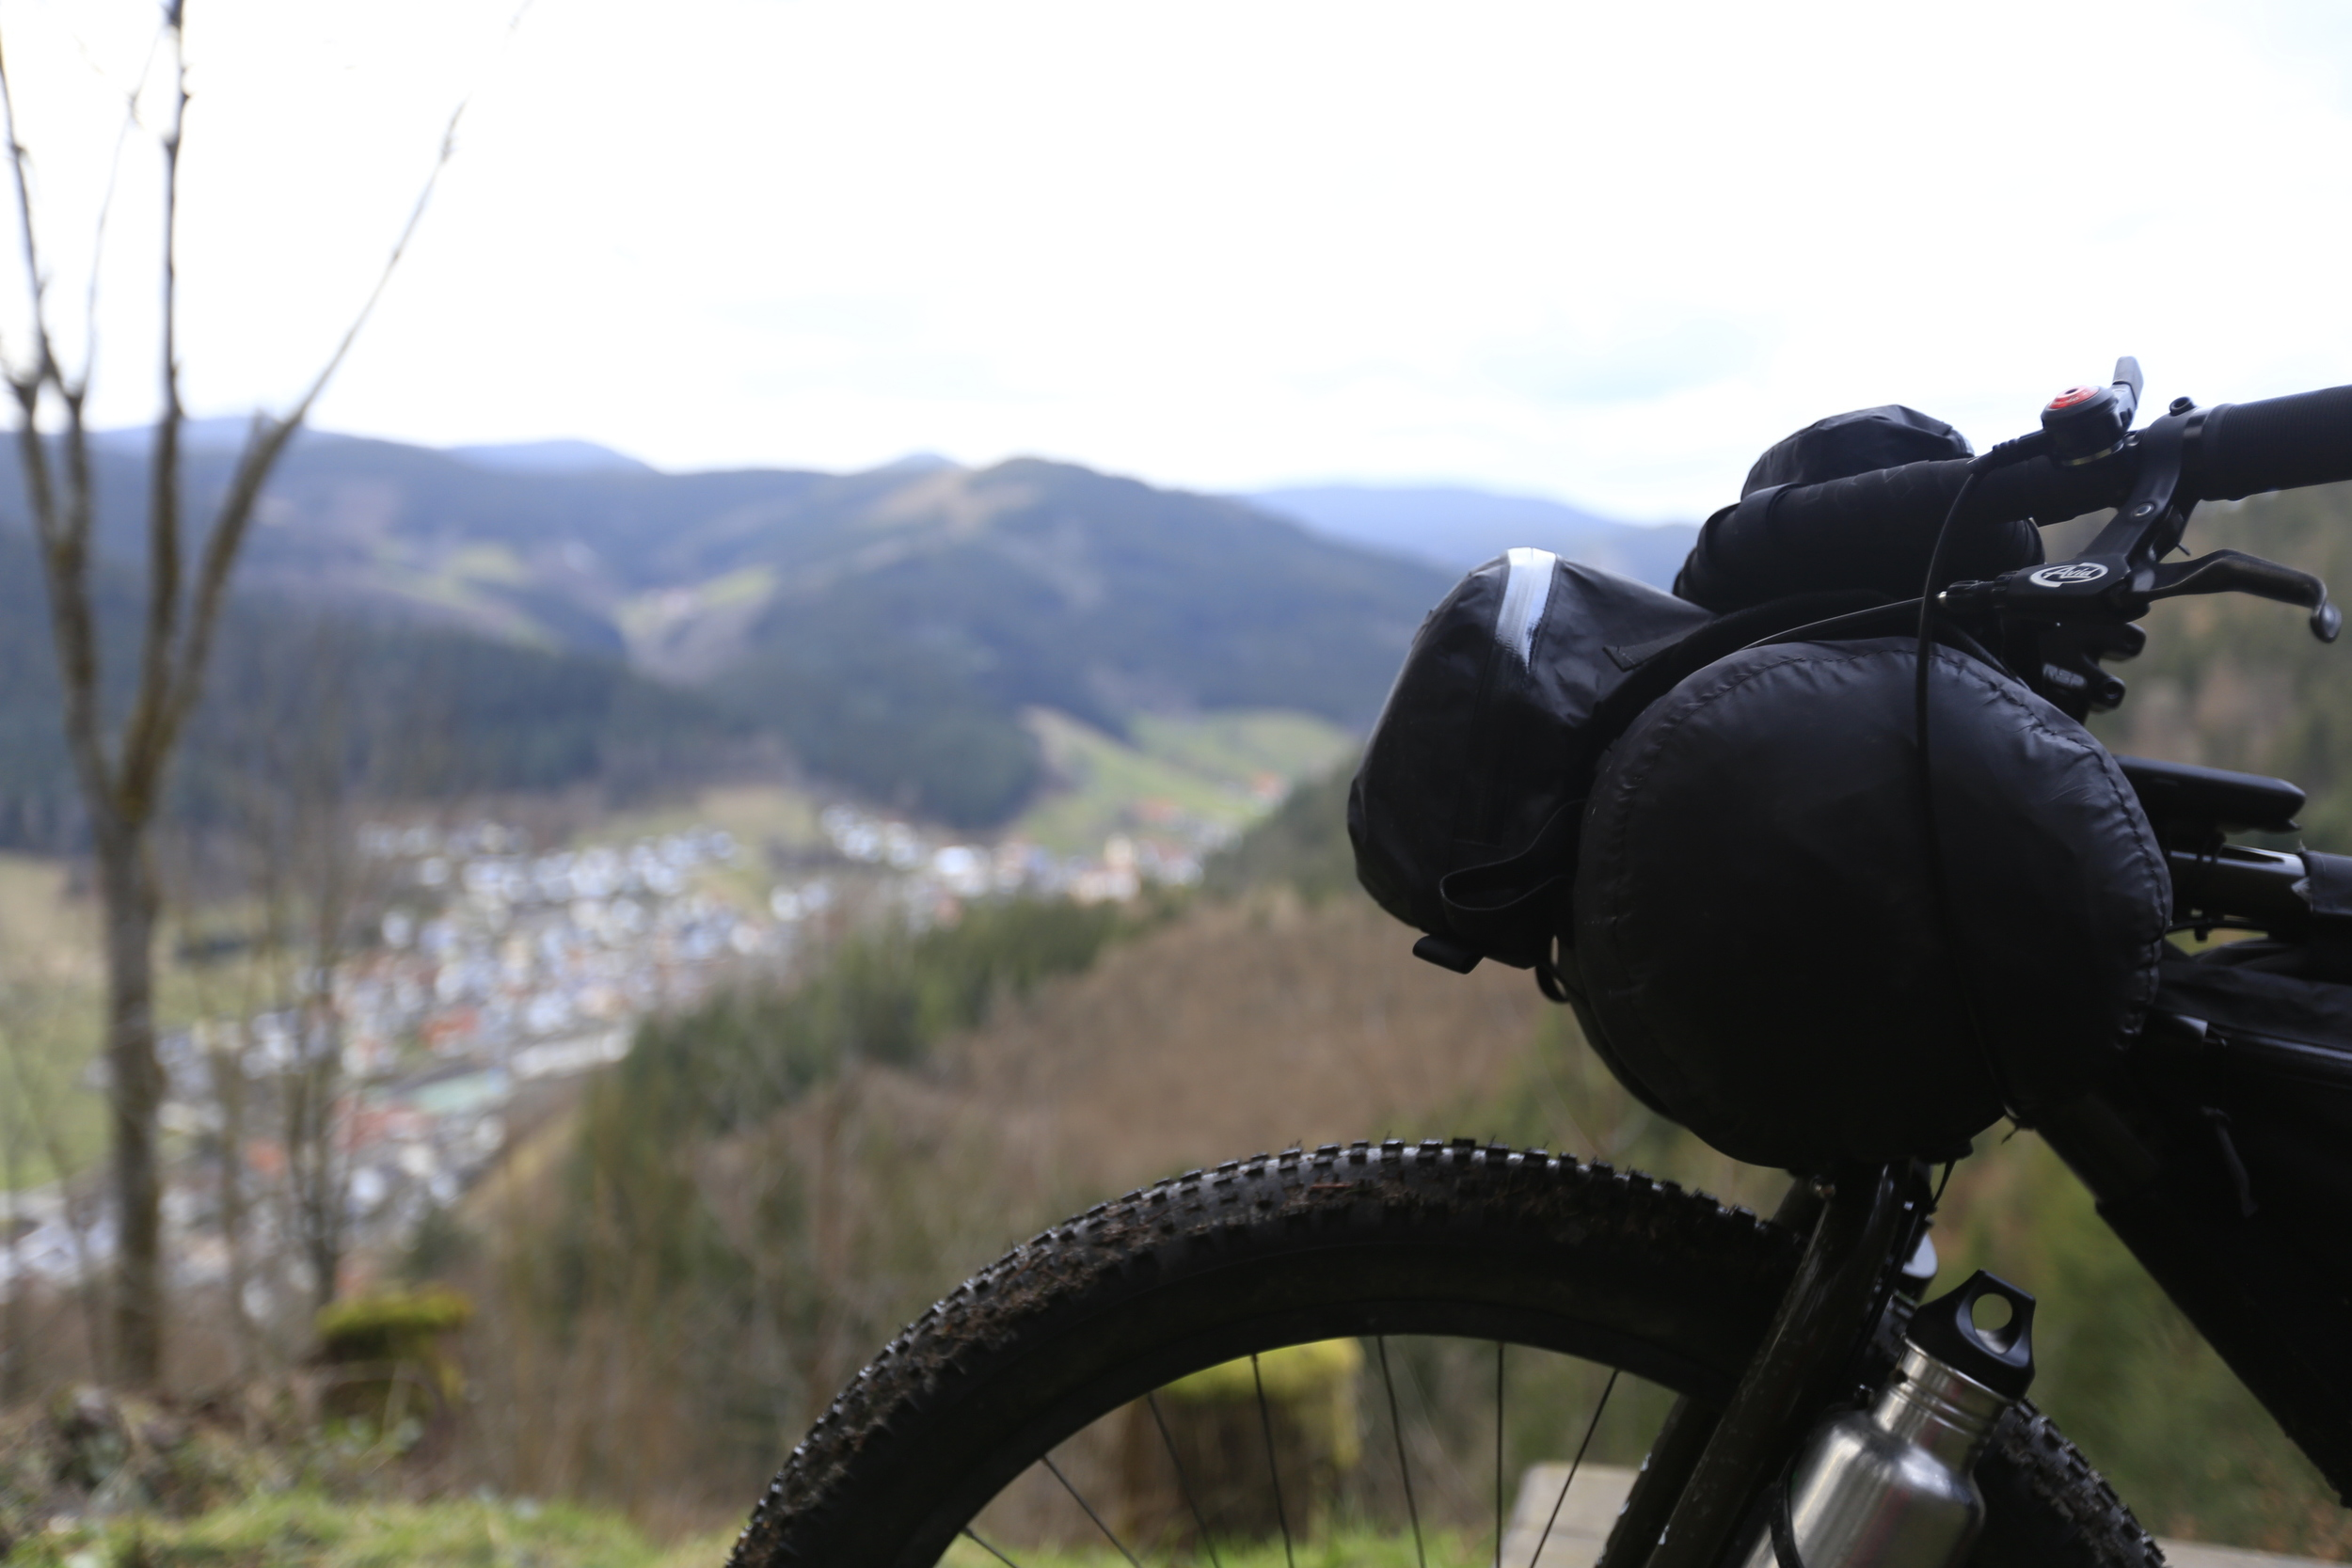 surly, surly ecr, fat bike, fat bike blog, bikepacking blog, cycling blog, photography, canon, canon 6d, germany, black forest, klean kanteen, wildcat gear, wildcat, travel, review, cycle gear, reviews, bicycle touring, cycle touring